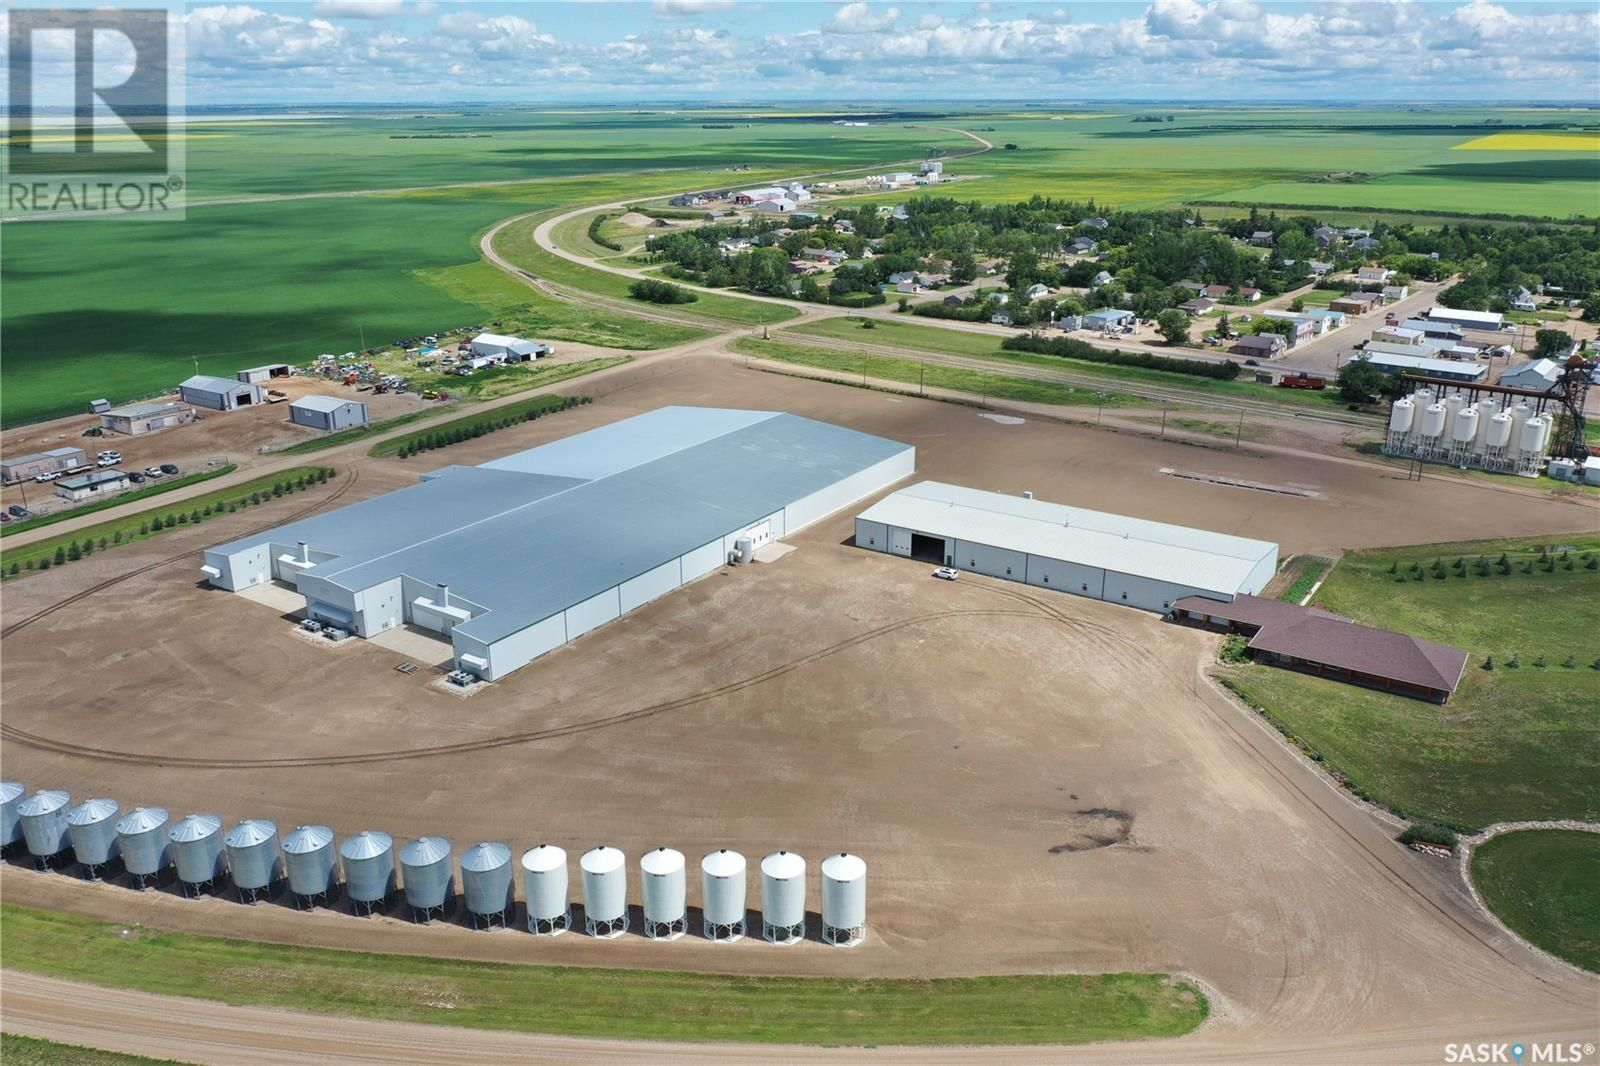 Main Photo: De Winter Farms in Coteau Rm No. 255: Agriculture for sale : MLS®# SK837758